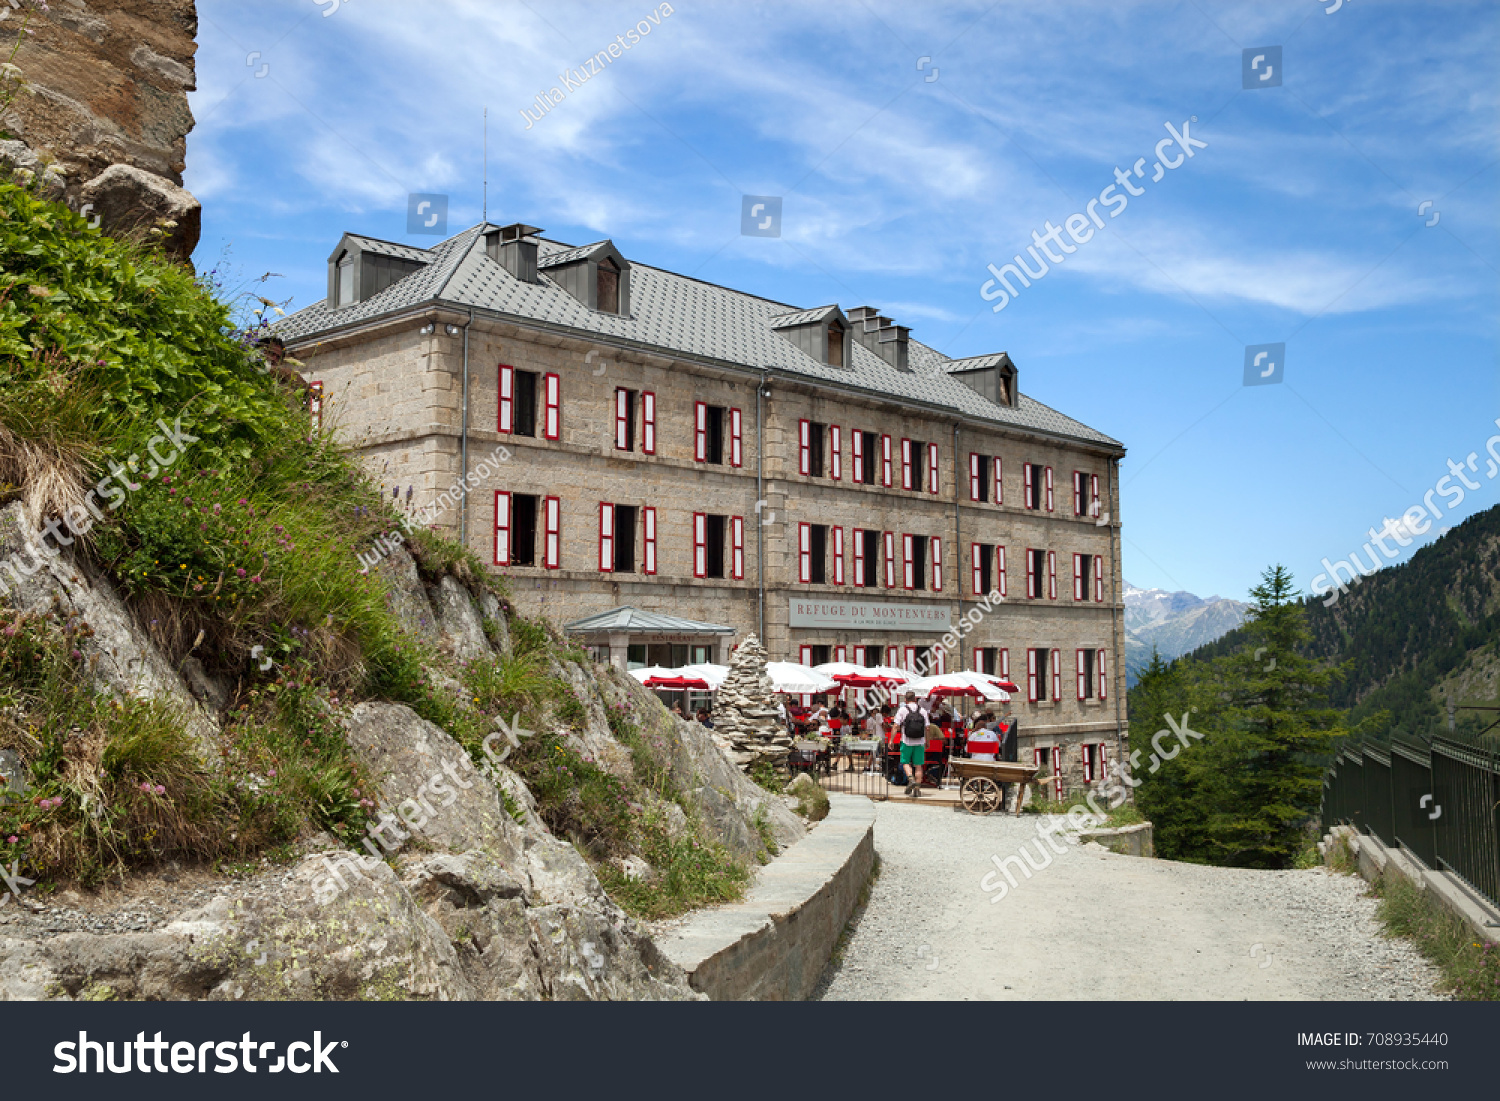 Hotel Montenvers Chamonix France Jul 06 2017 Restaurant Stock Photo Edit Now